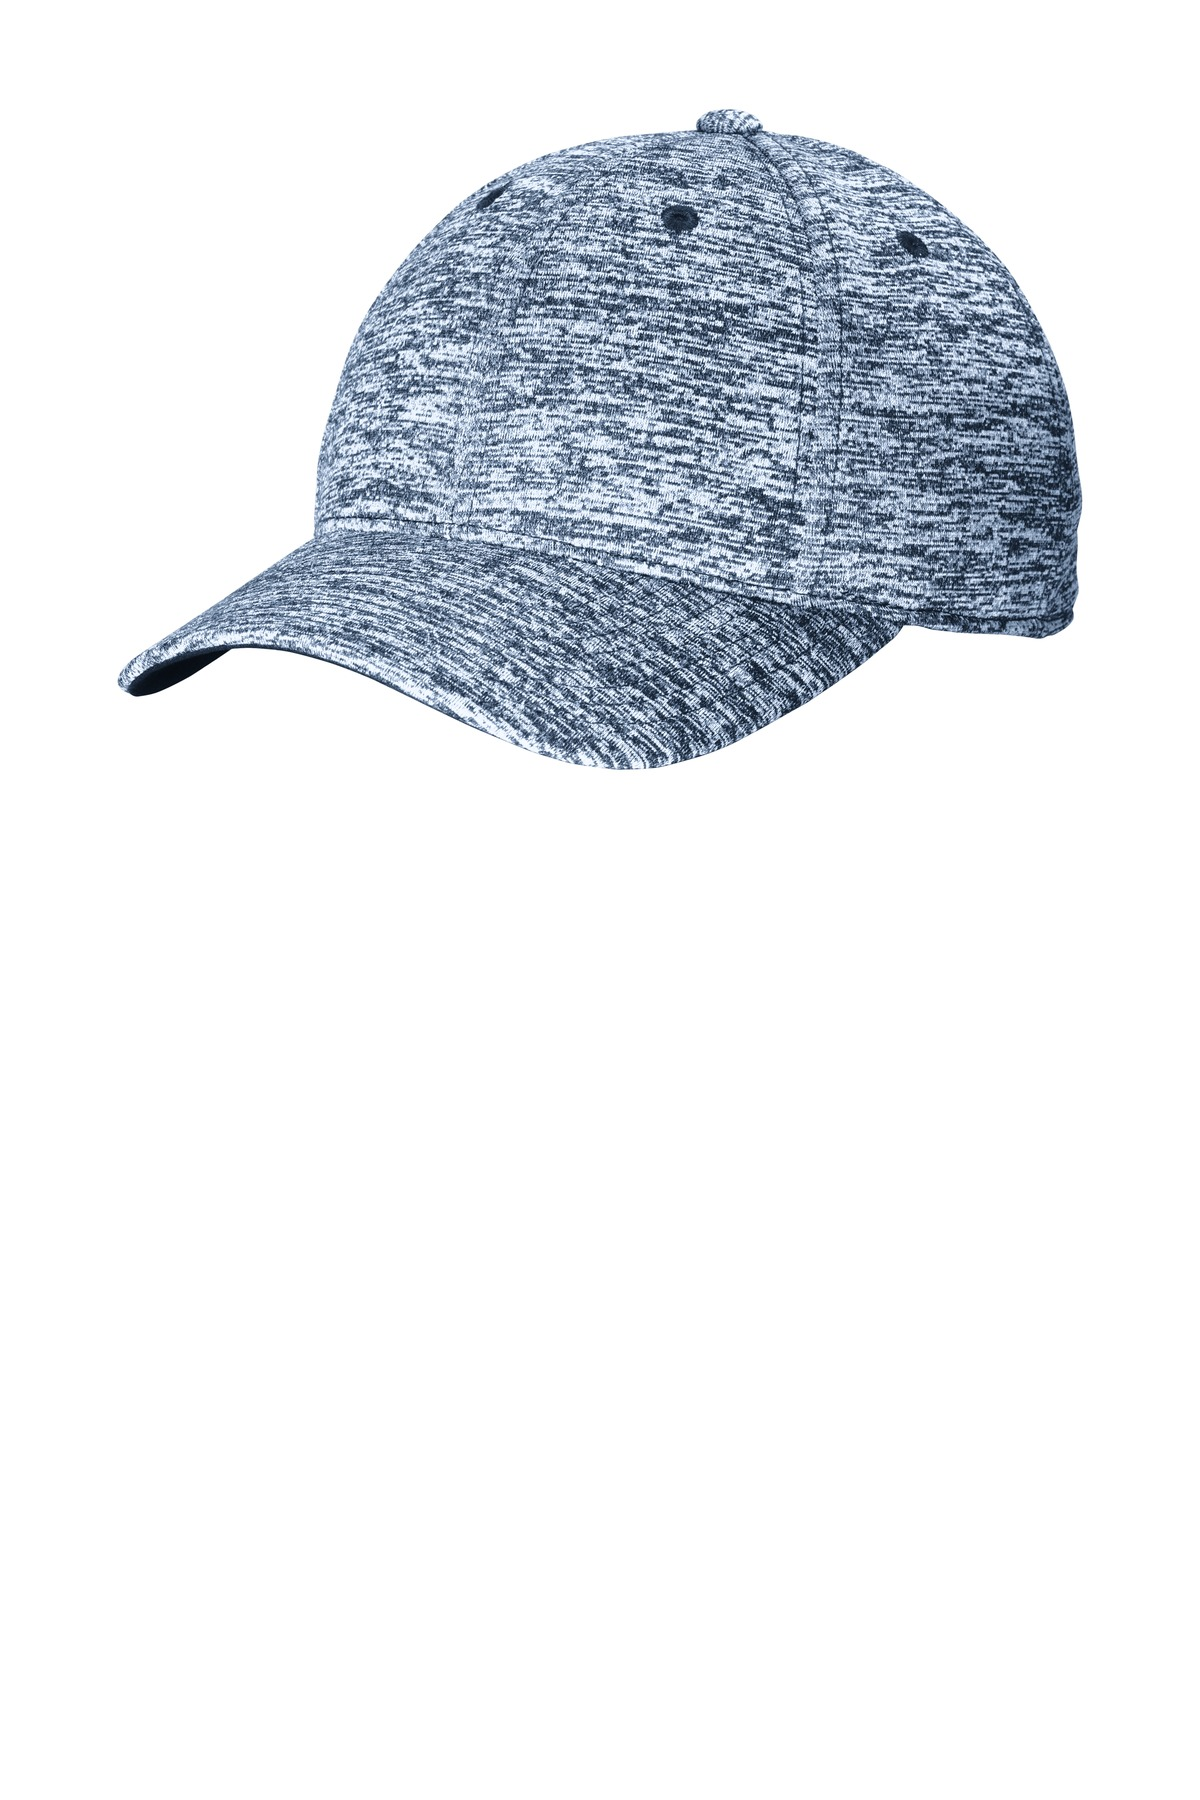 Sport-Tek ®  PosiCharge ®  Electric Heather Cap. STC34 - True Navy Electric